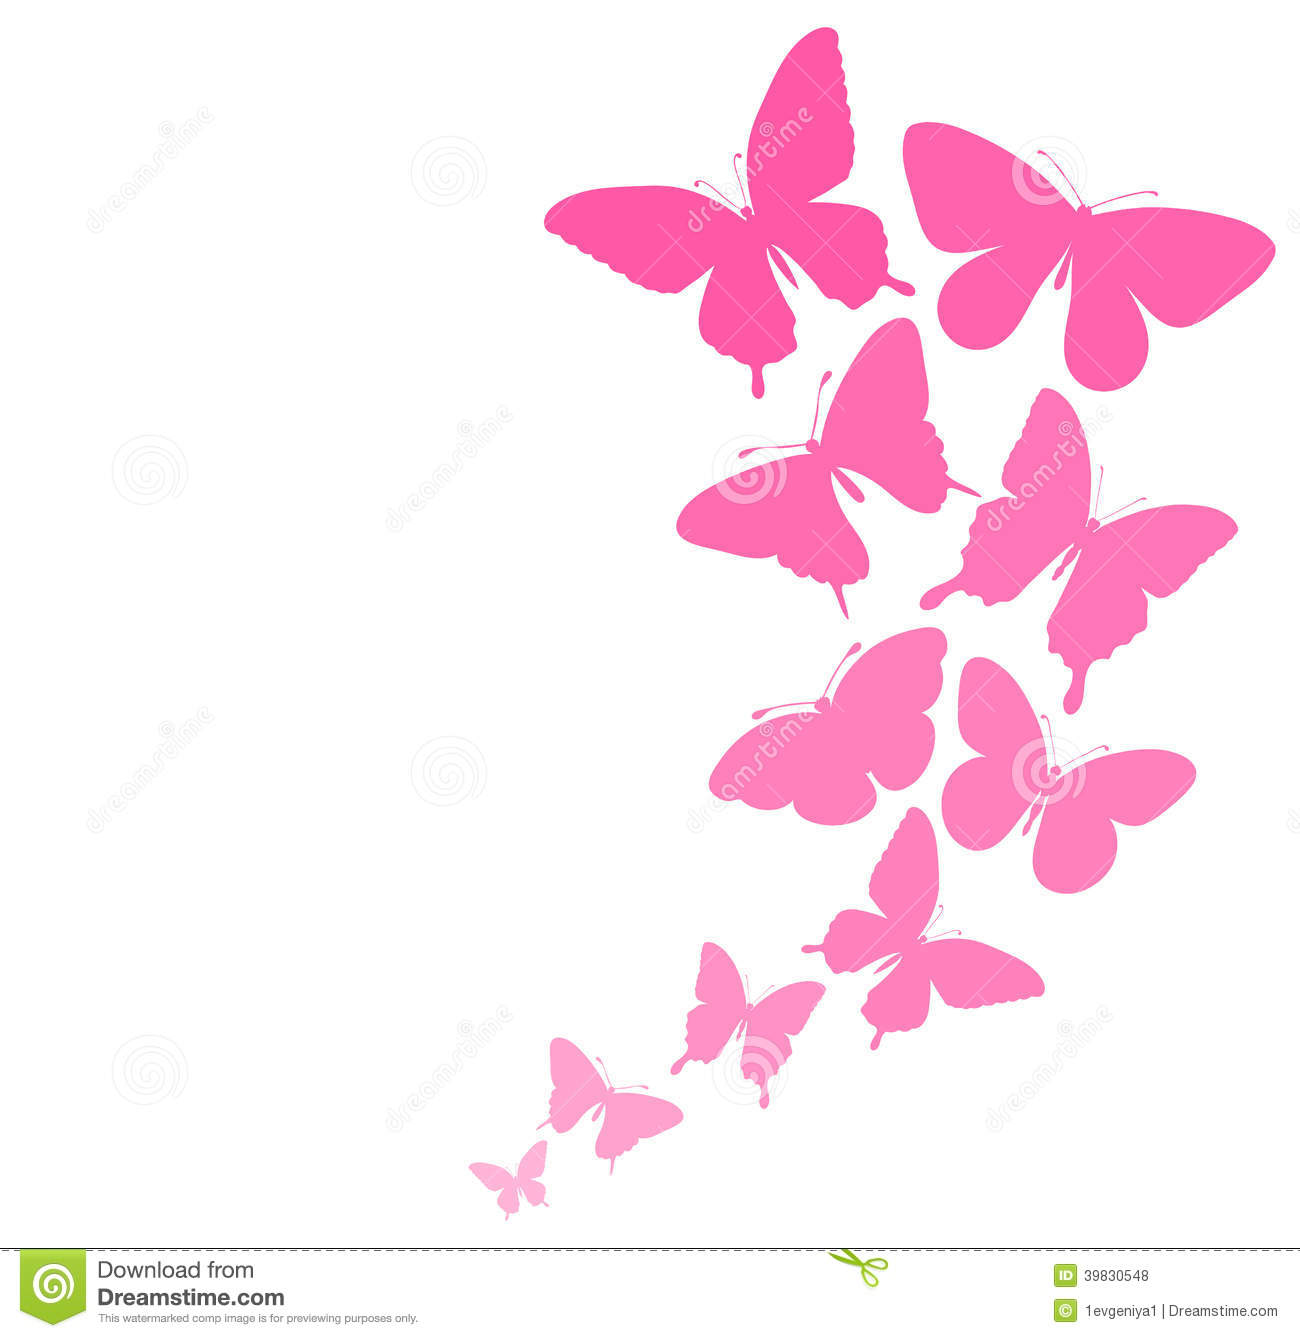 Background With A Border Of Butterflies Flying. Stock Illustration - Illustration of butterfly ...